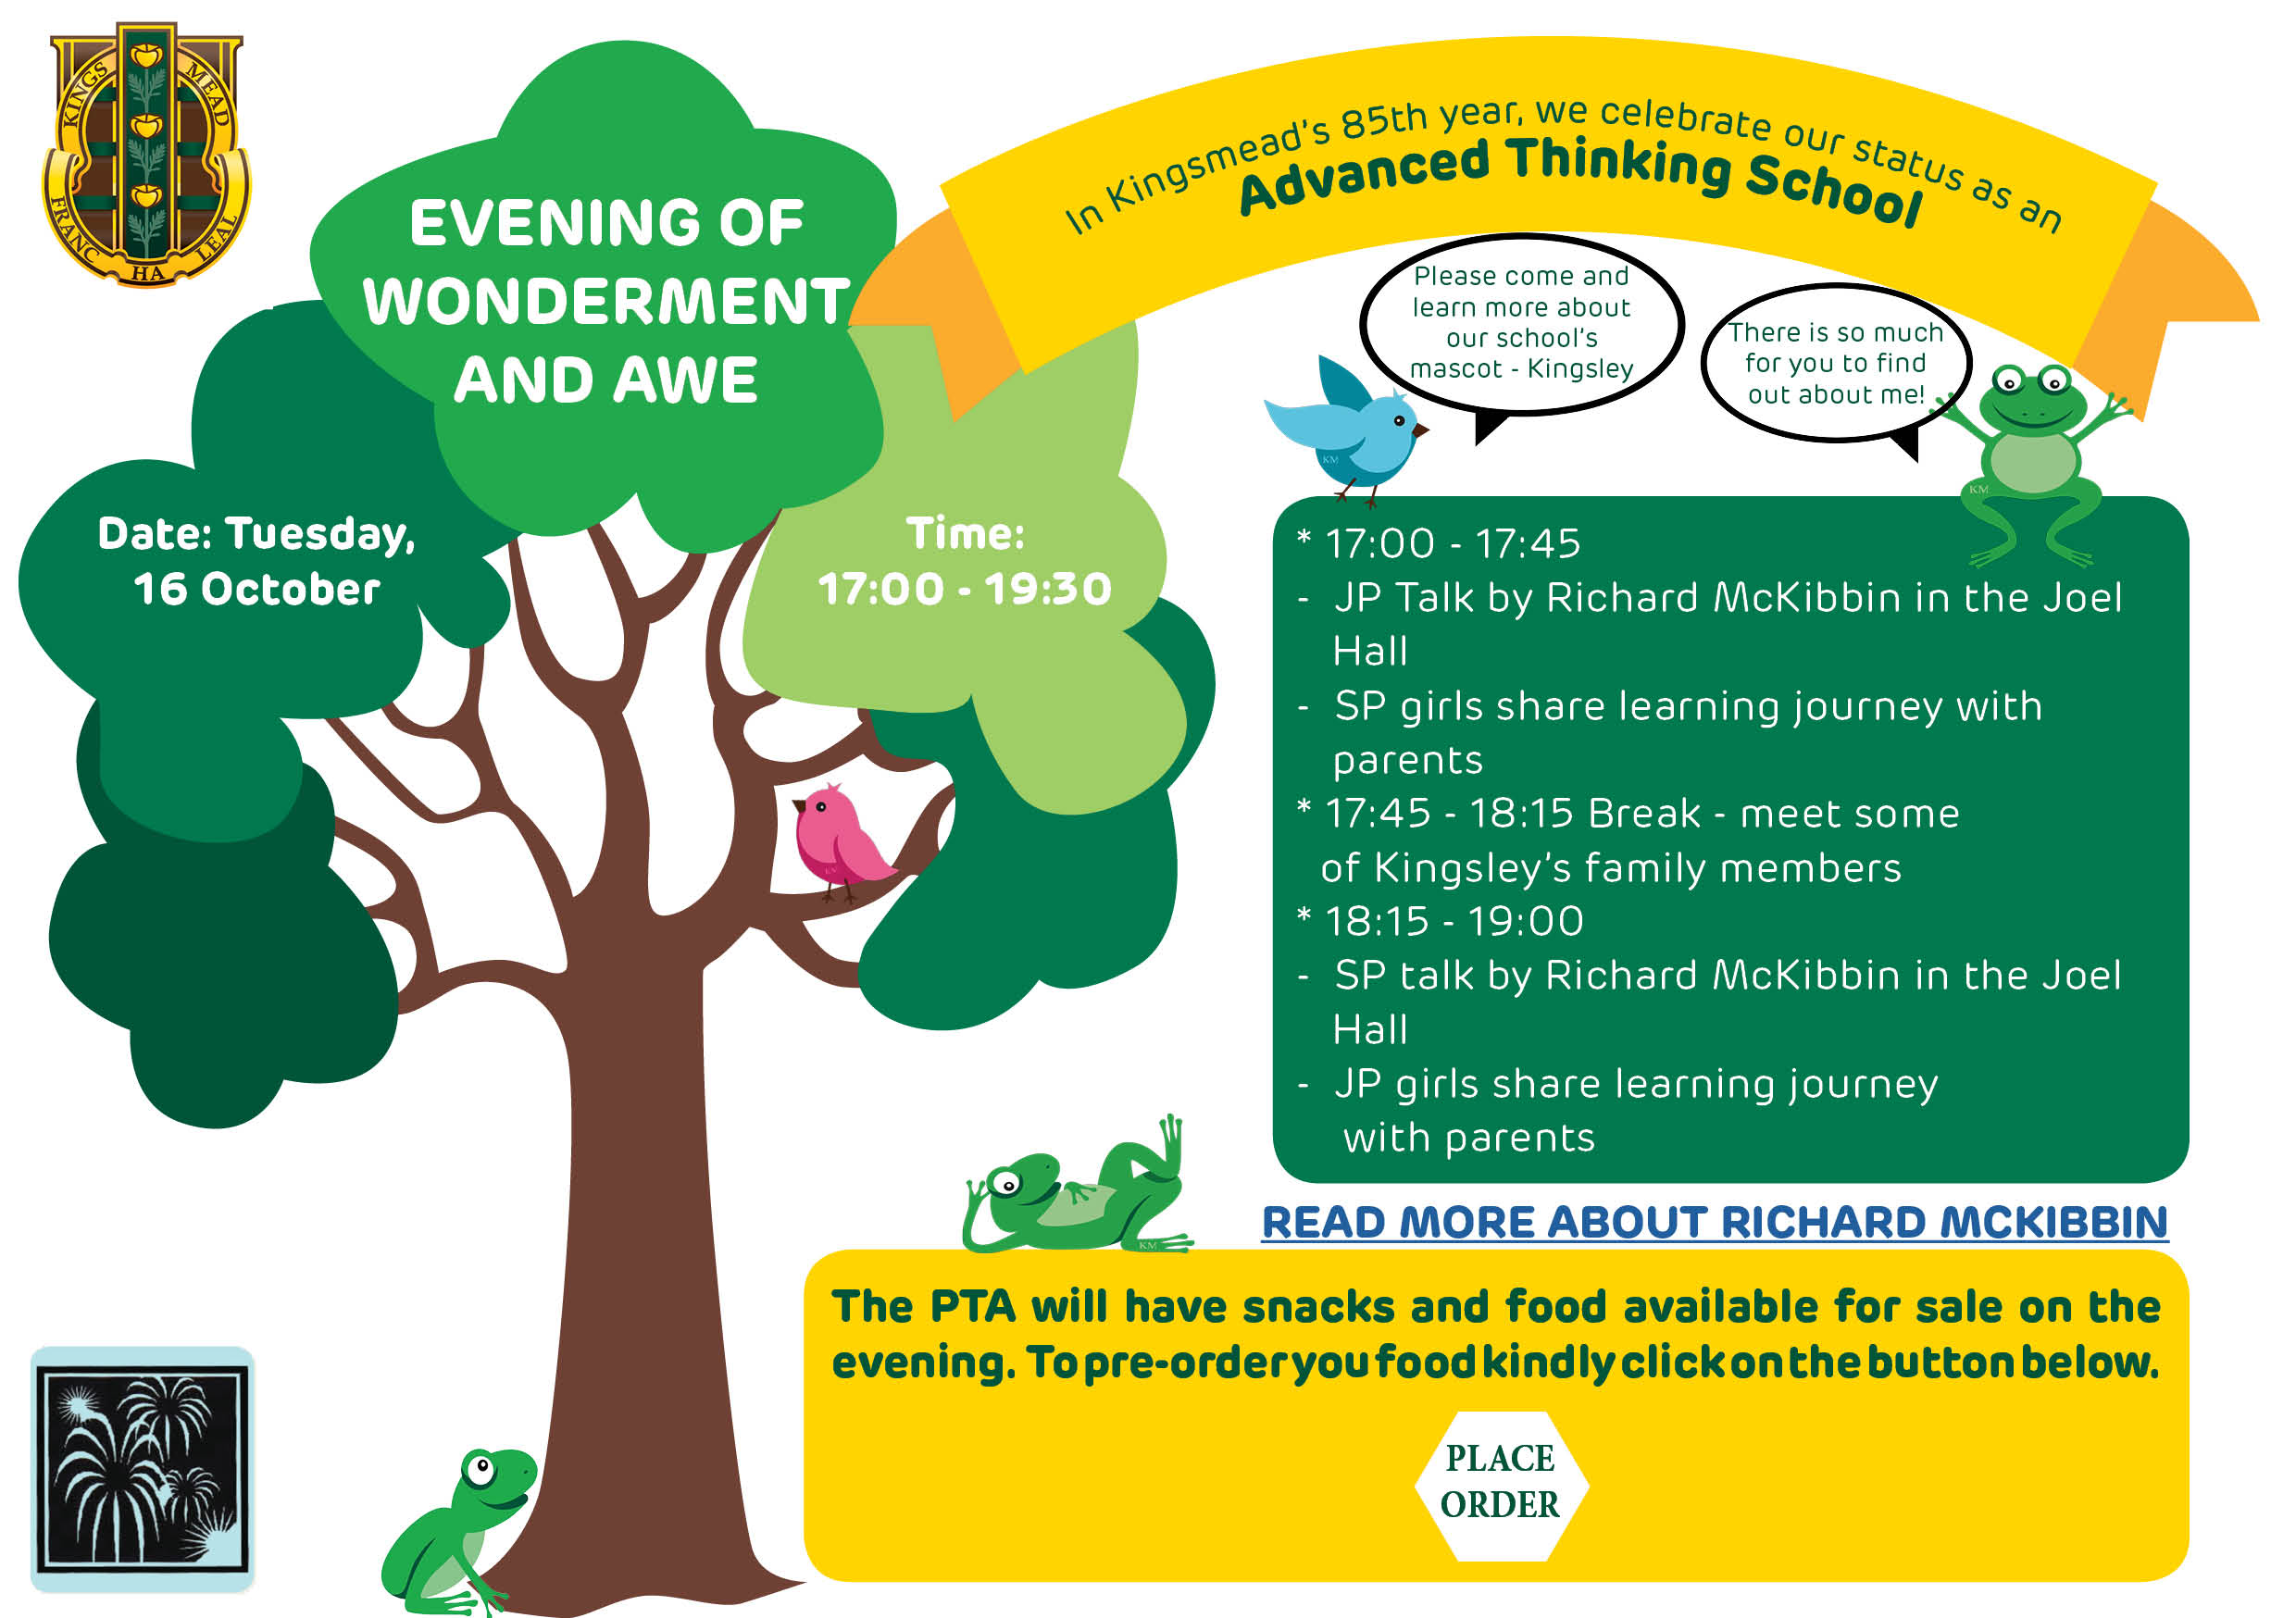 Evening of wonderment and awe Kingsmead College